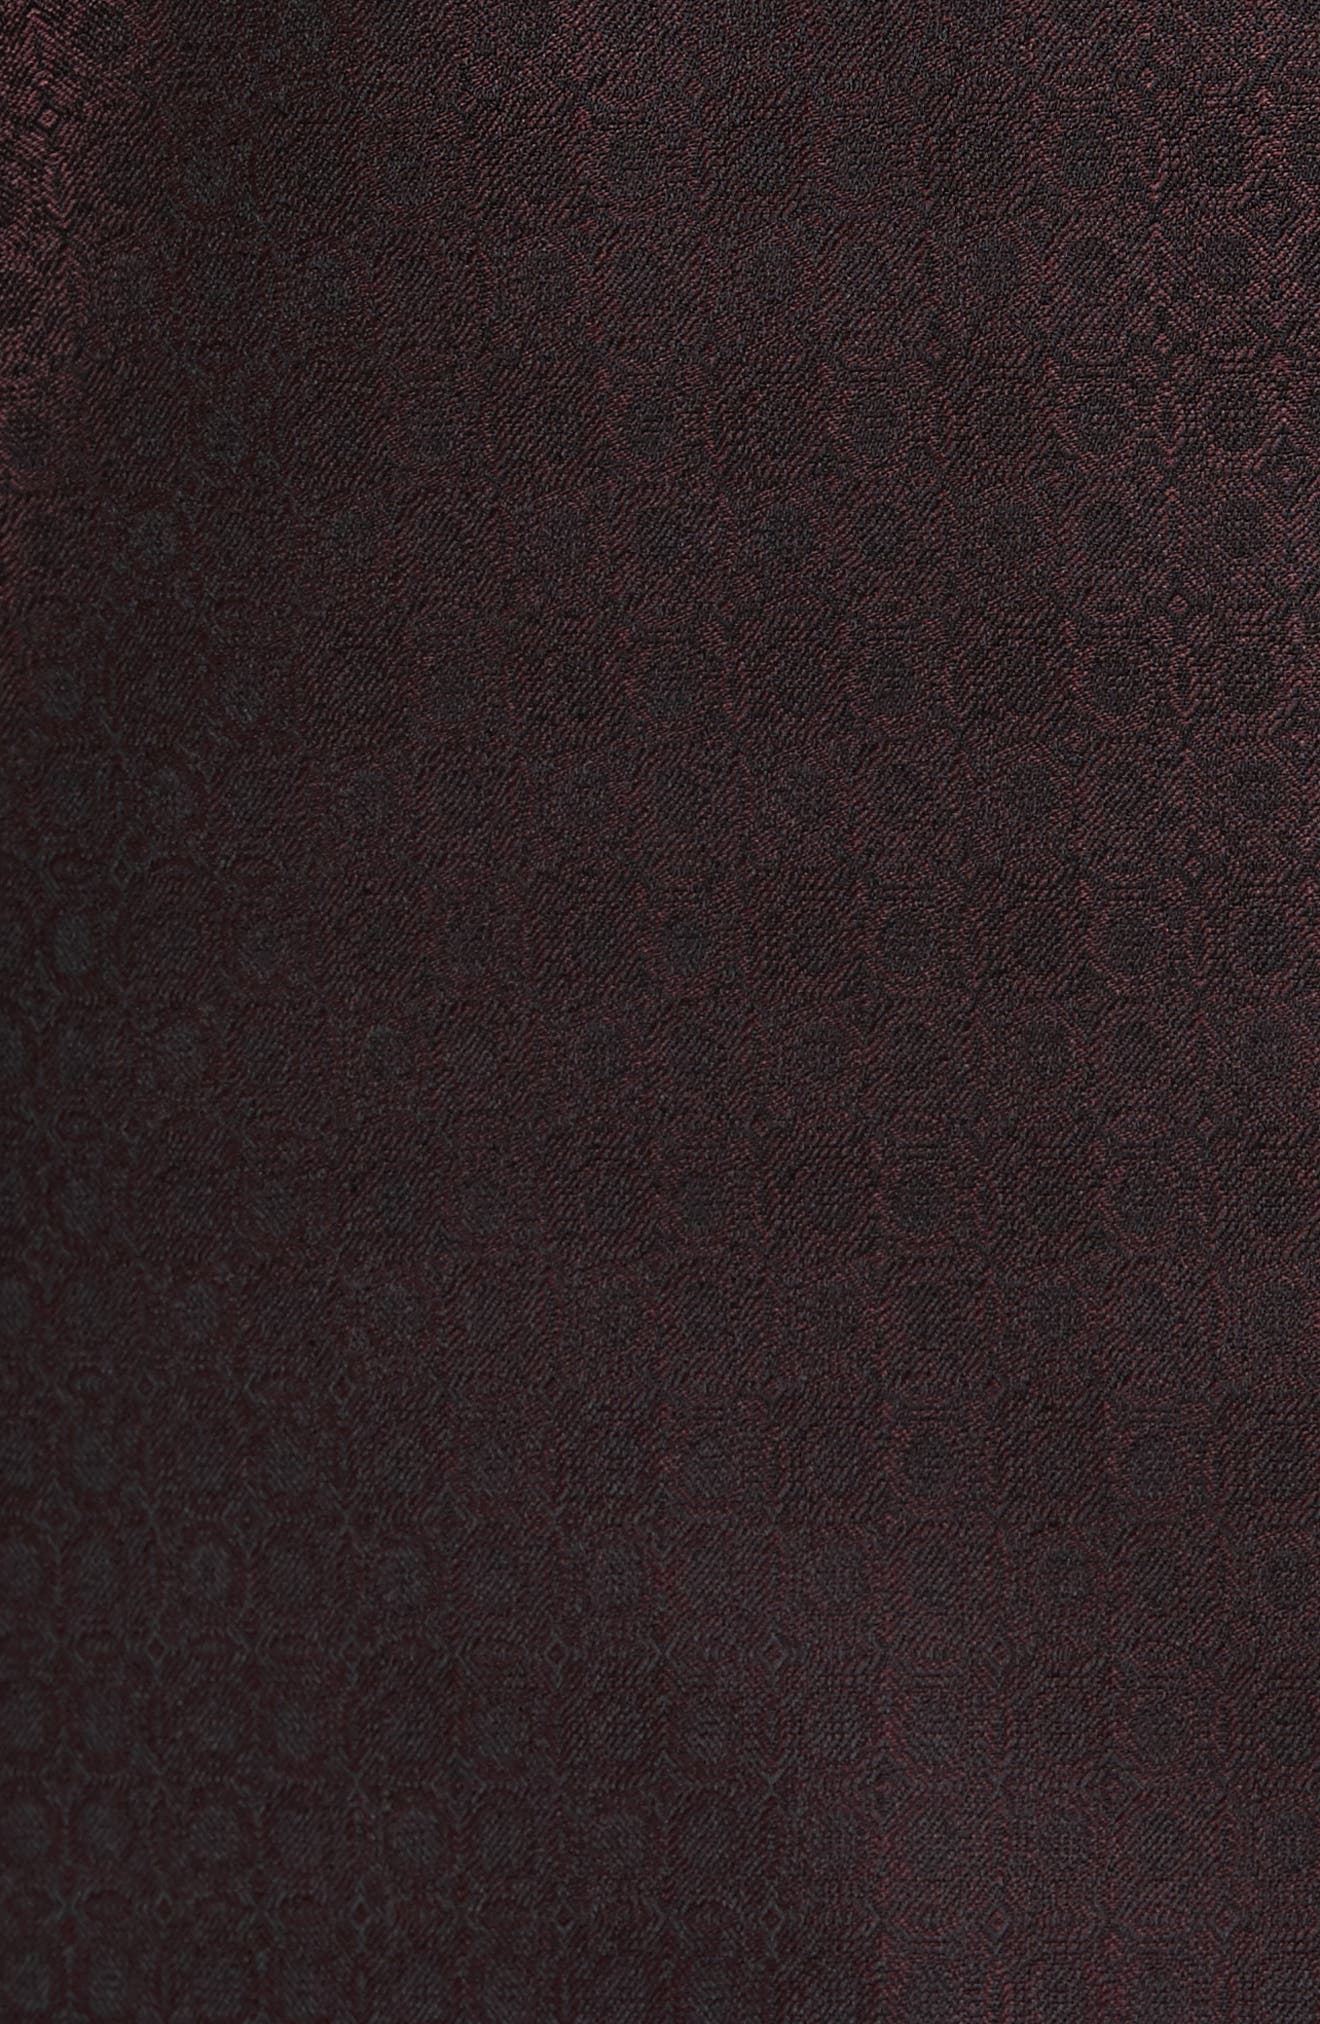 Jack Trim Fit Wool Dinner Jacket,                             Alternate thumbnail 5, color,                             Burgundy